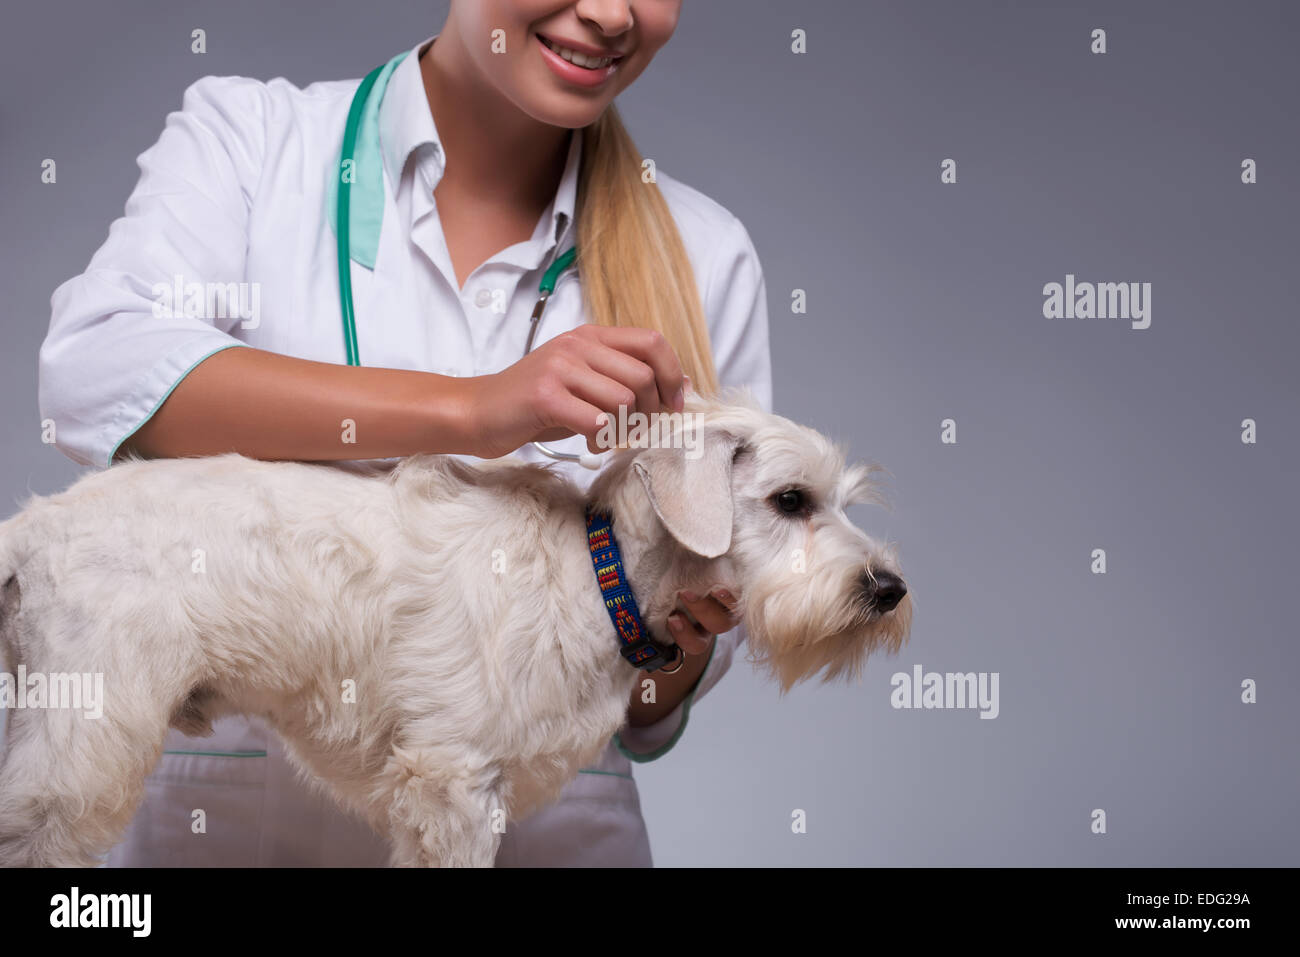 Female veterinarian examines little dog - Stock Image